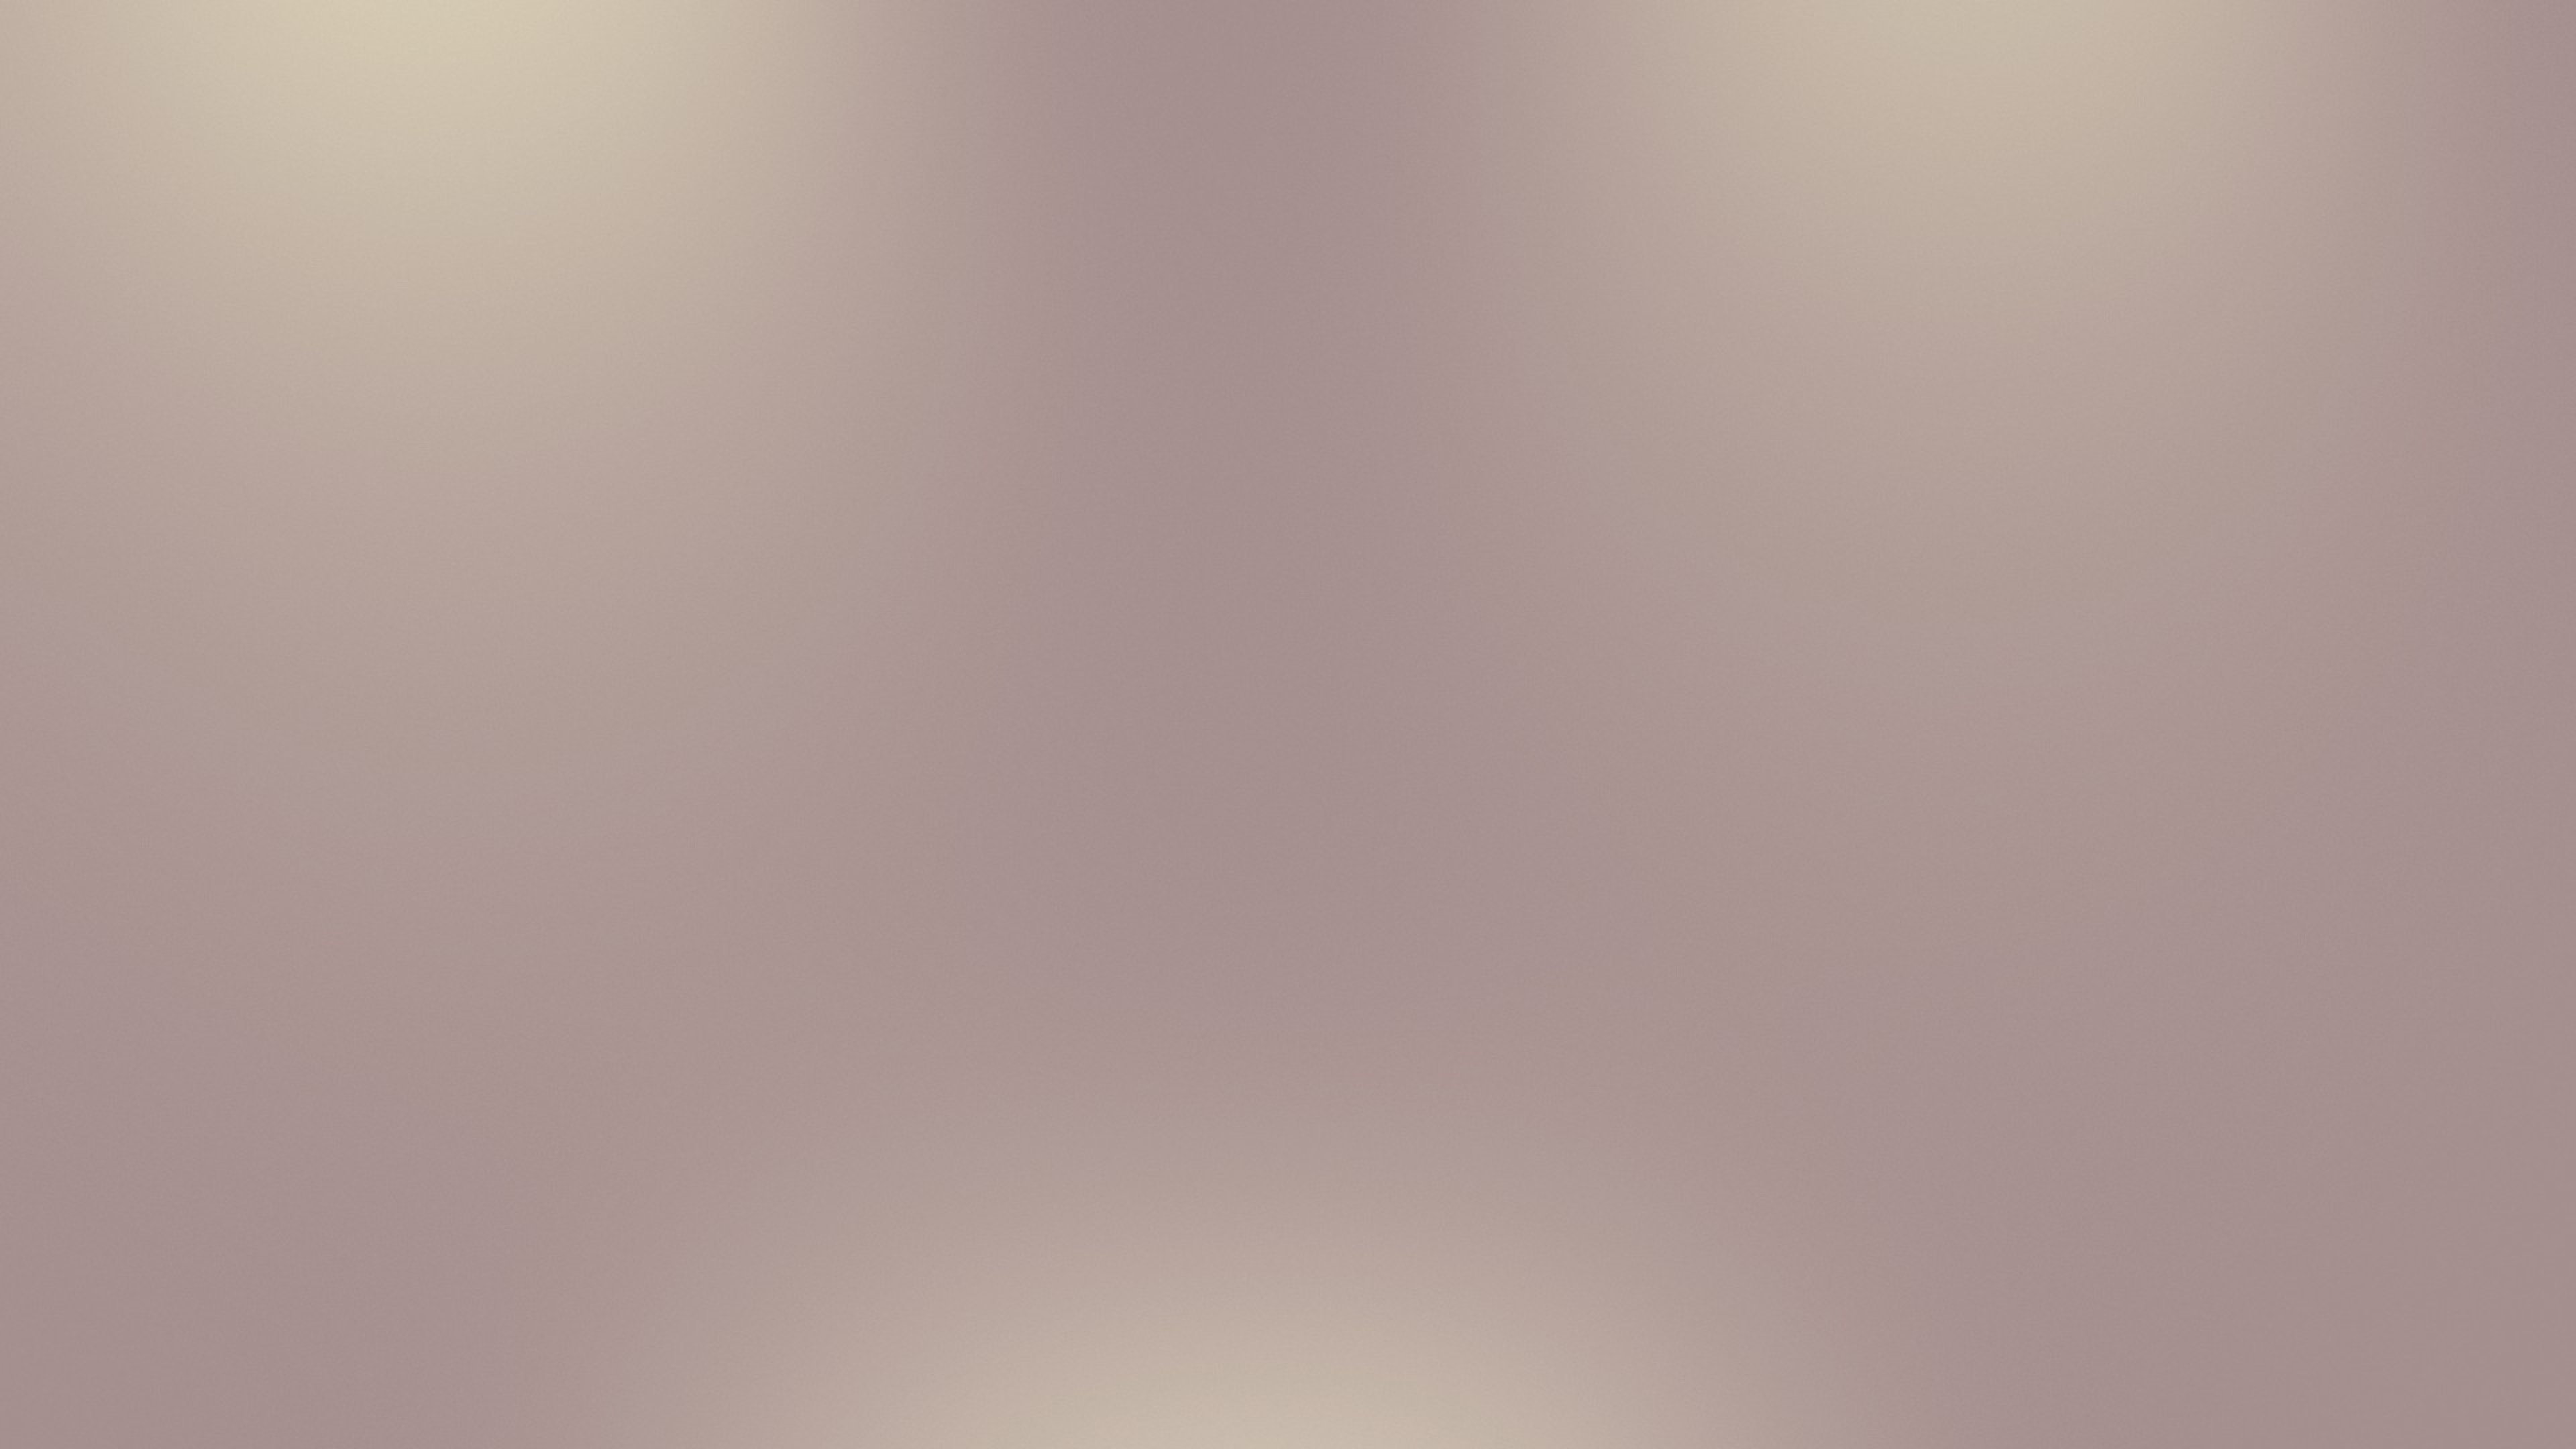 beige blur light 1539370638 - Beige Blur Light - light wallpapers, blur wallpapers, abstract wallpapers